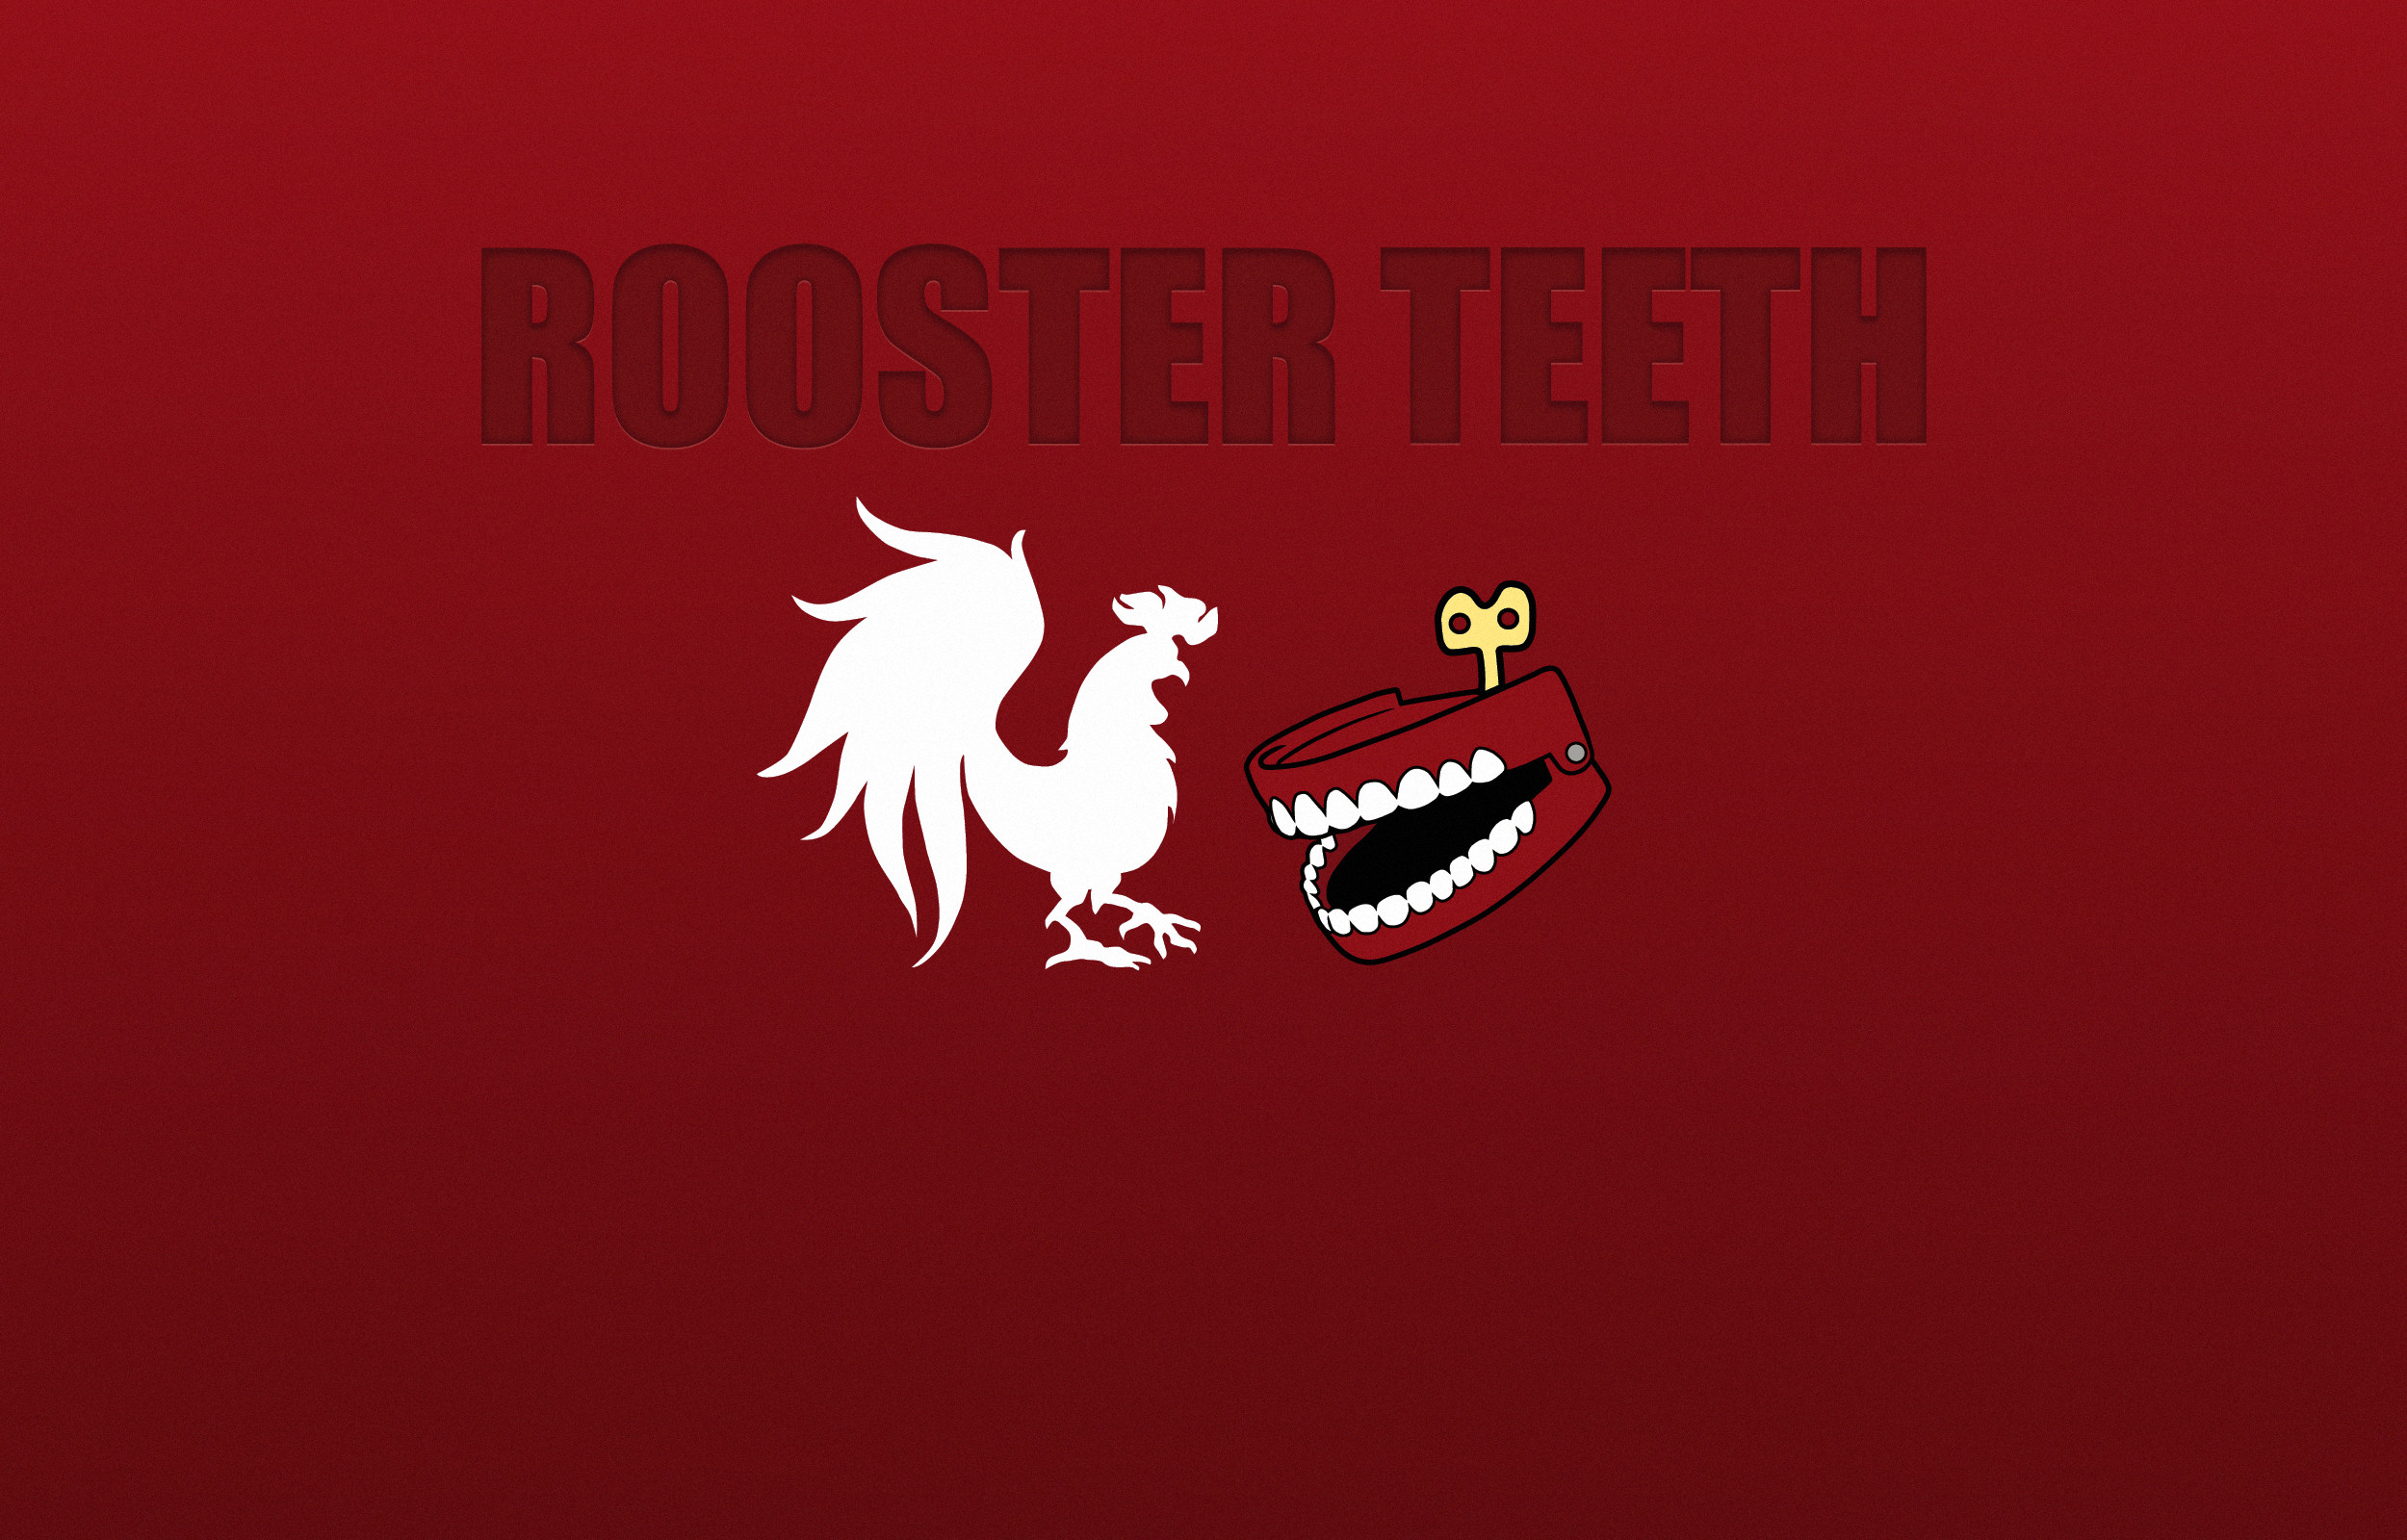 Res: 2500x1600, Rooster Teeth iPhone Wallpapers